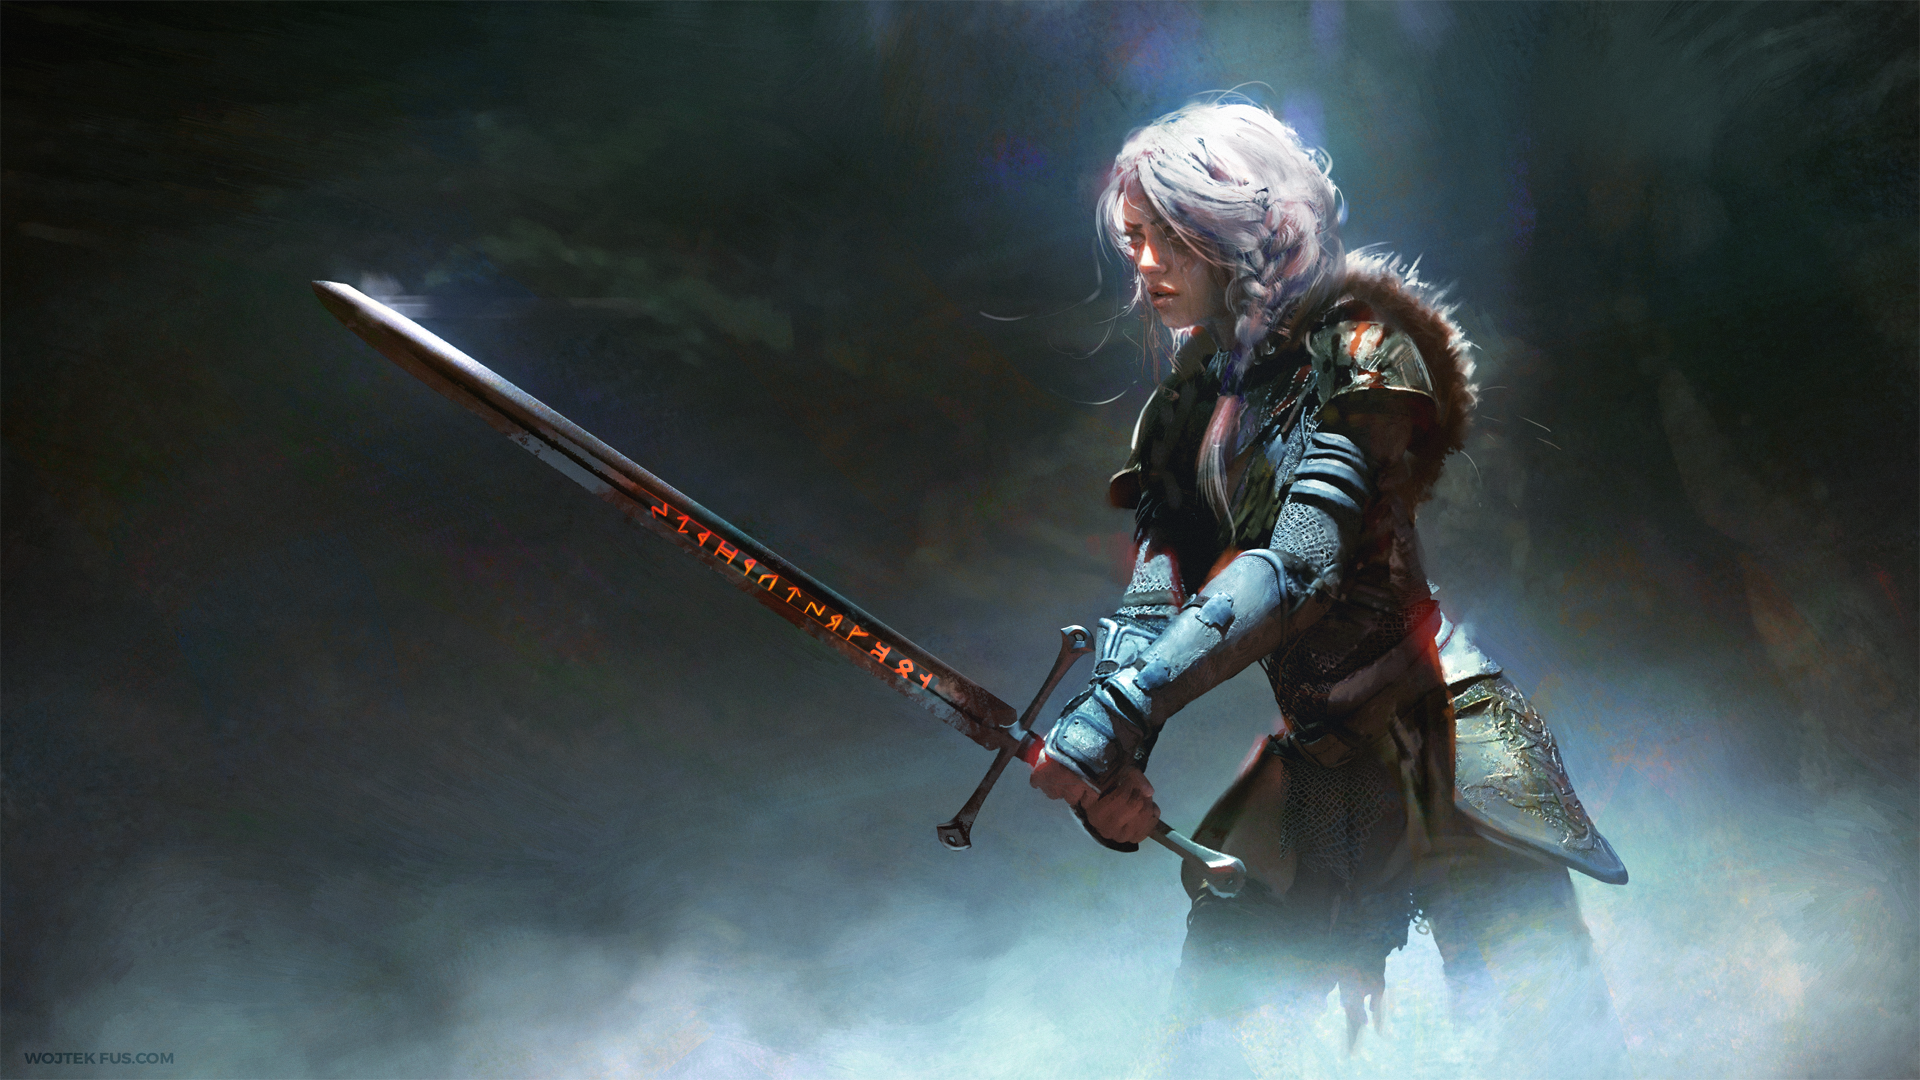 107 Ciri The Witcher HD Wallpapers Background Images 1920x1080